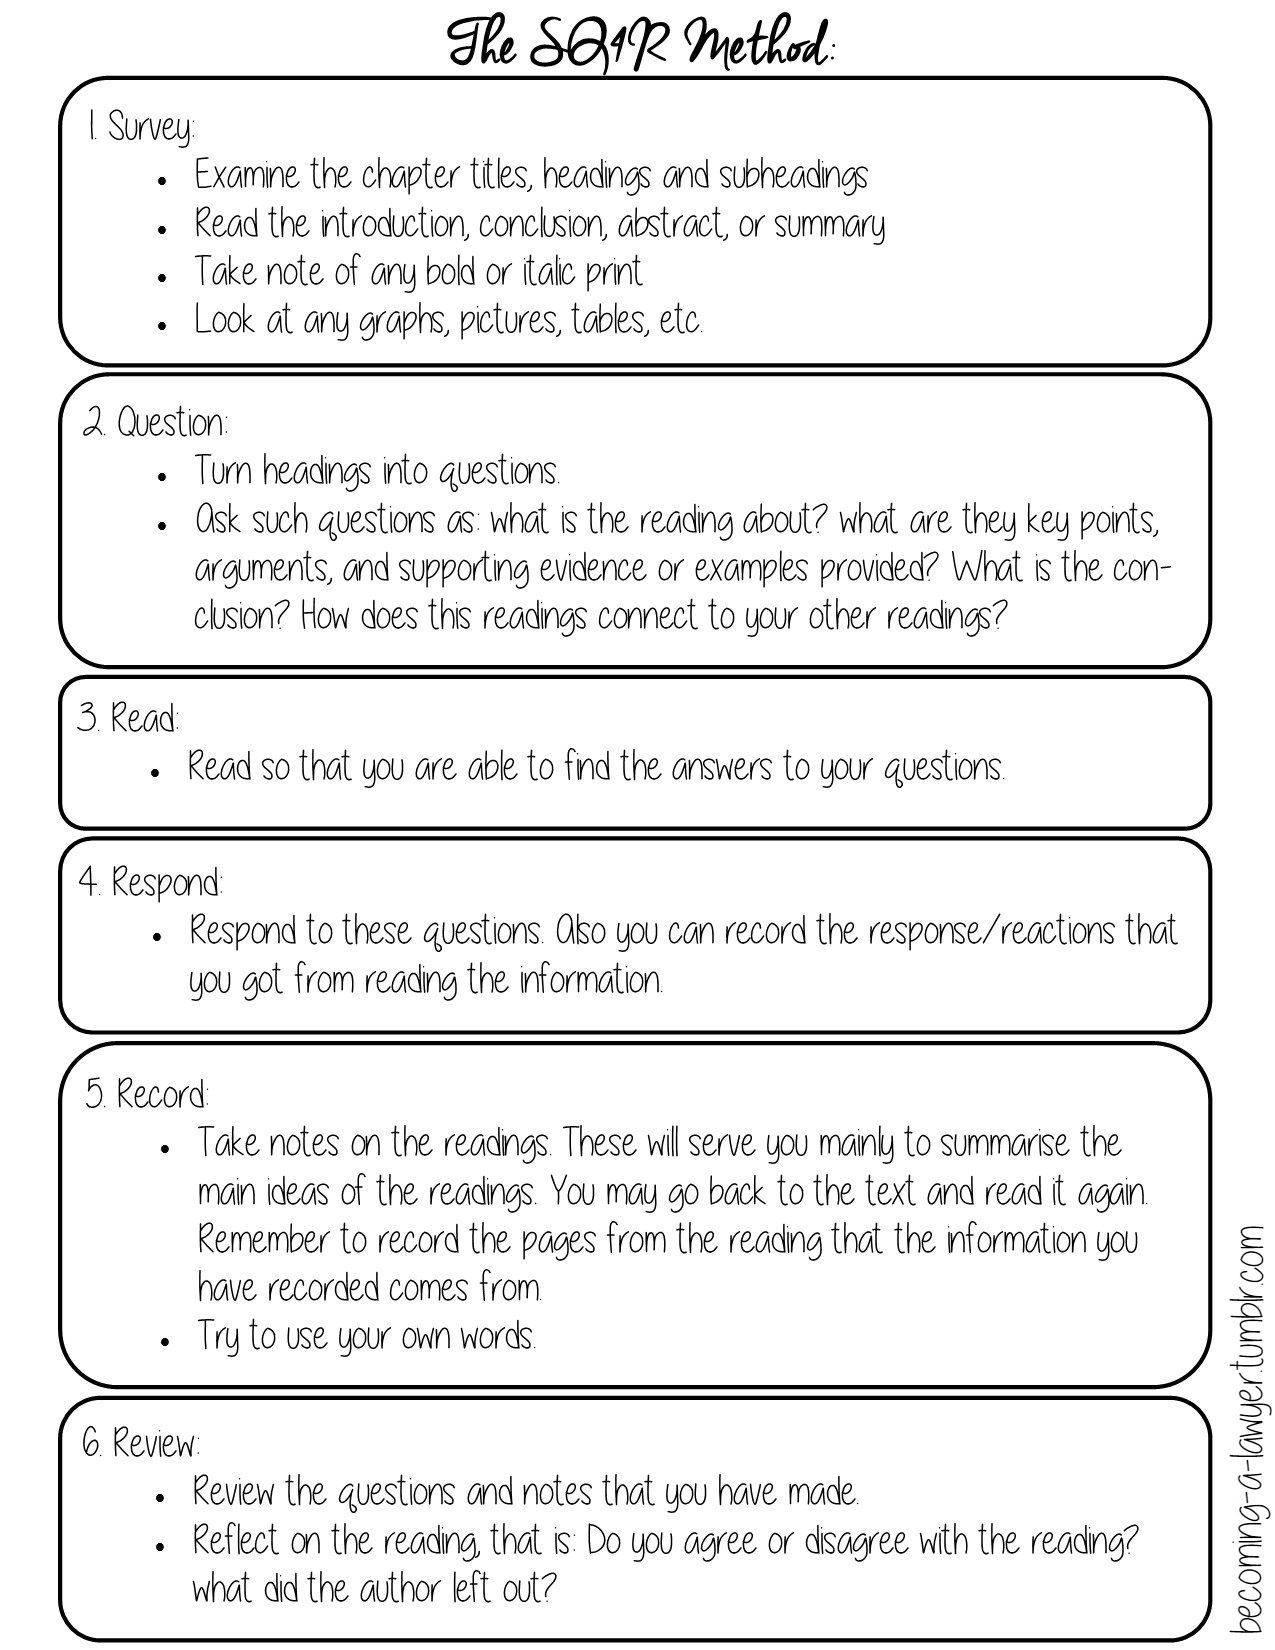 Sq4r Template Sq3r Reading Graphic Organizer 02 03